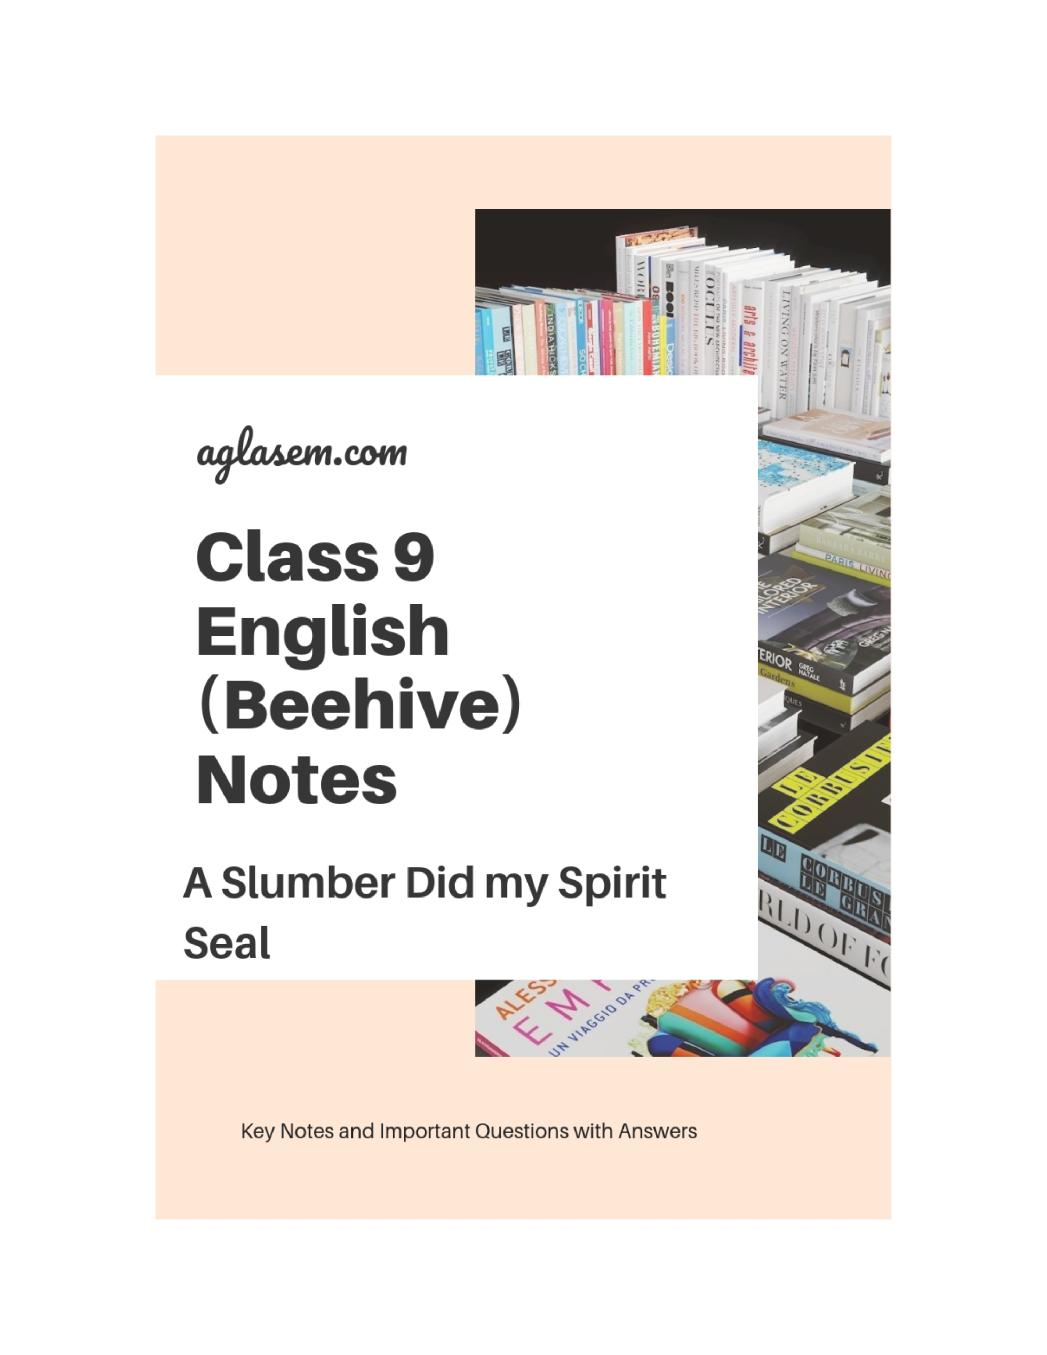 Class 9 English A Slumber did my Spirit Seal Notes, Important Question & Practice Paper